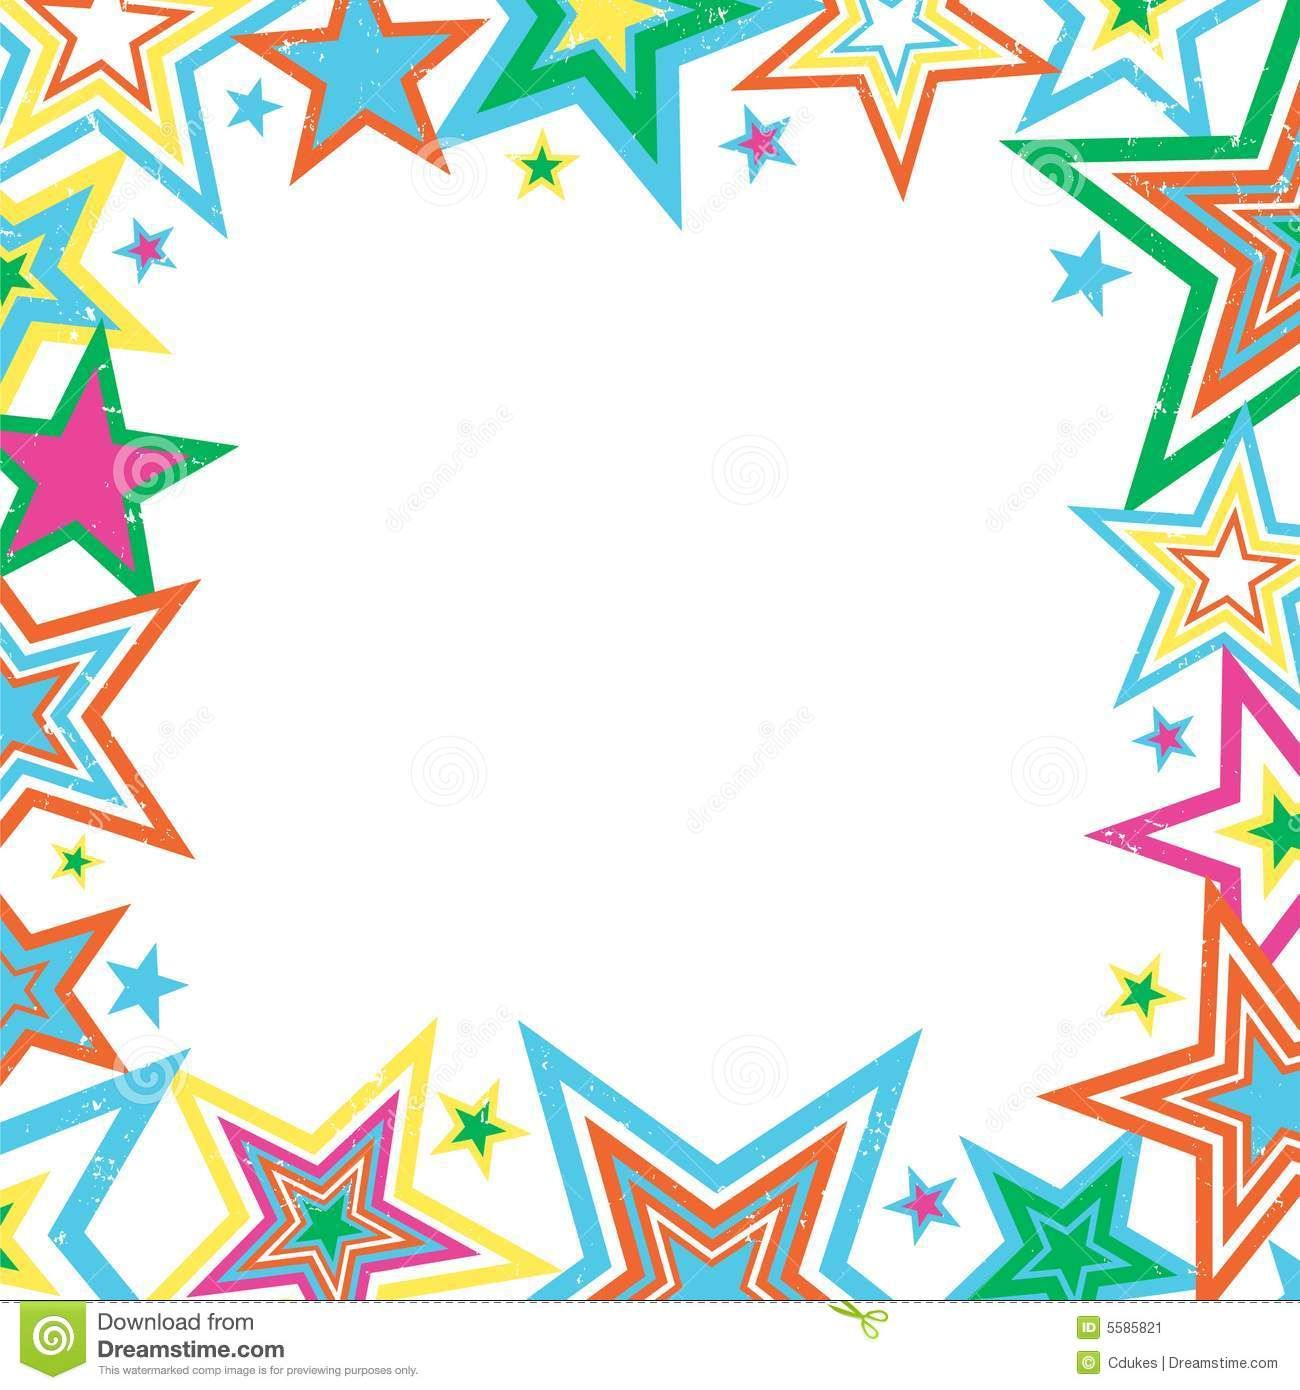 Pix For Gt Pink Star Borders And Frames